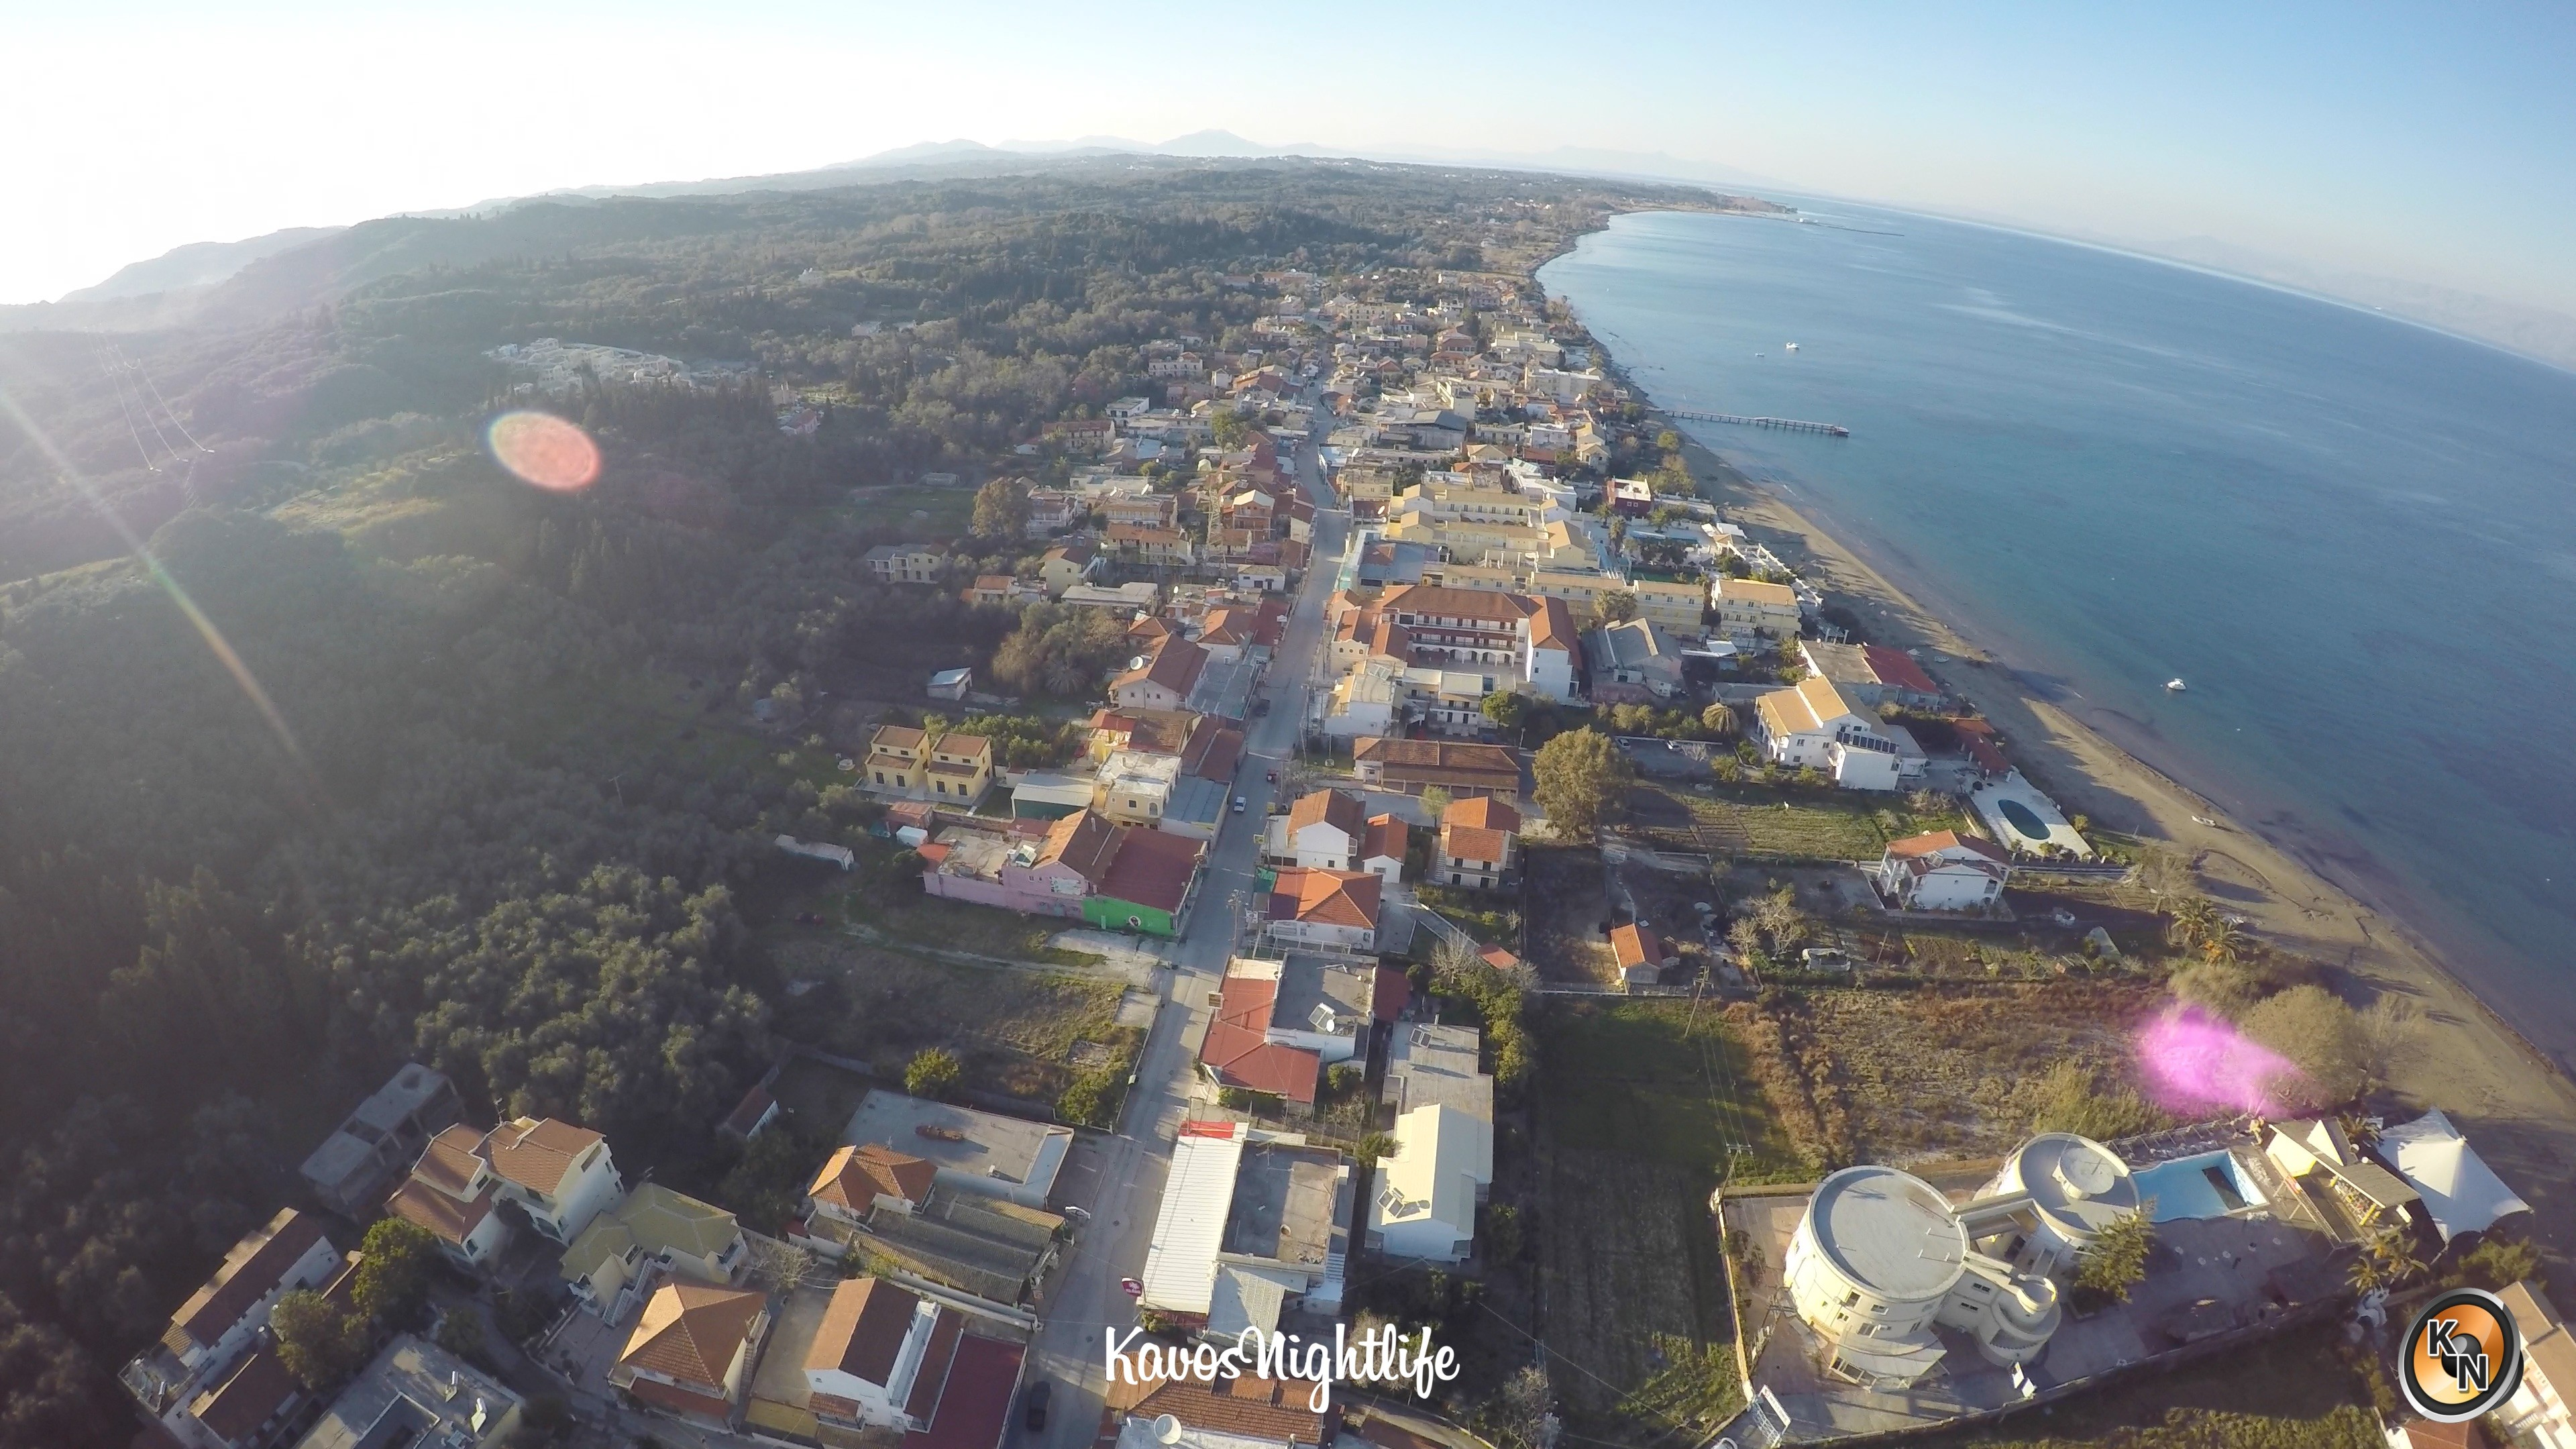 In February 2017 We Sent Our Gopro Hero4 Into The Air Mounted To Kavos Nightlife Quadcopter Film Strip From North South